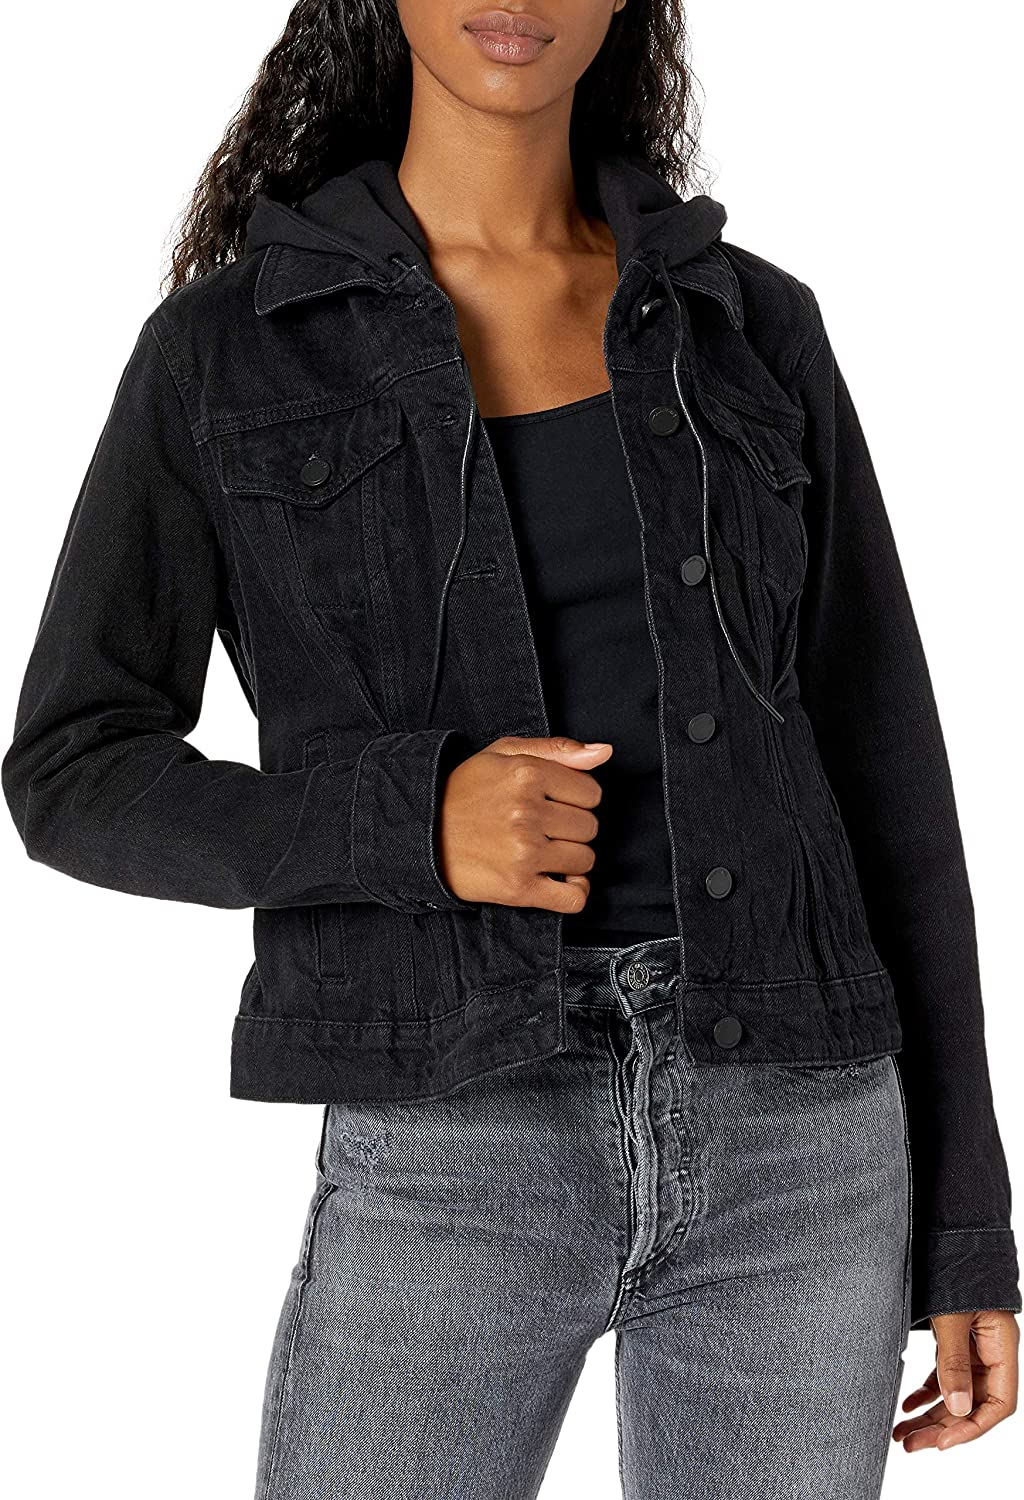 [BLANKNYC] womens Luxury Clothing Washed Out Black Denim Trucker Jacket With Removable Hood